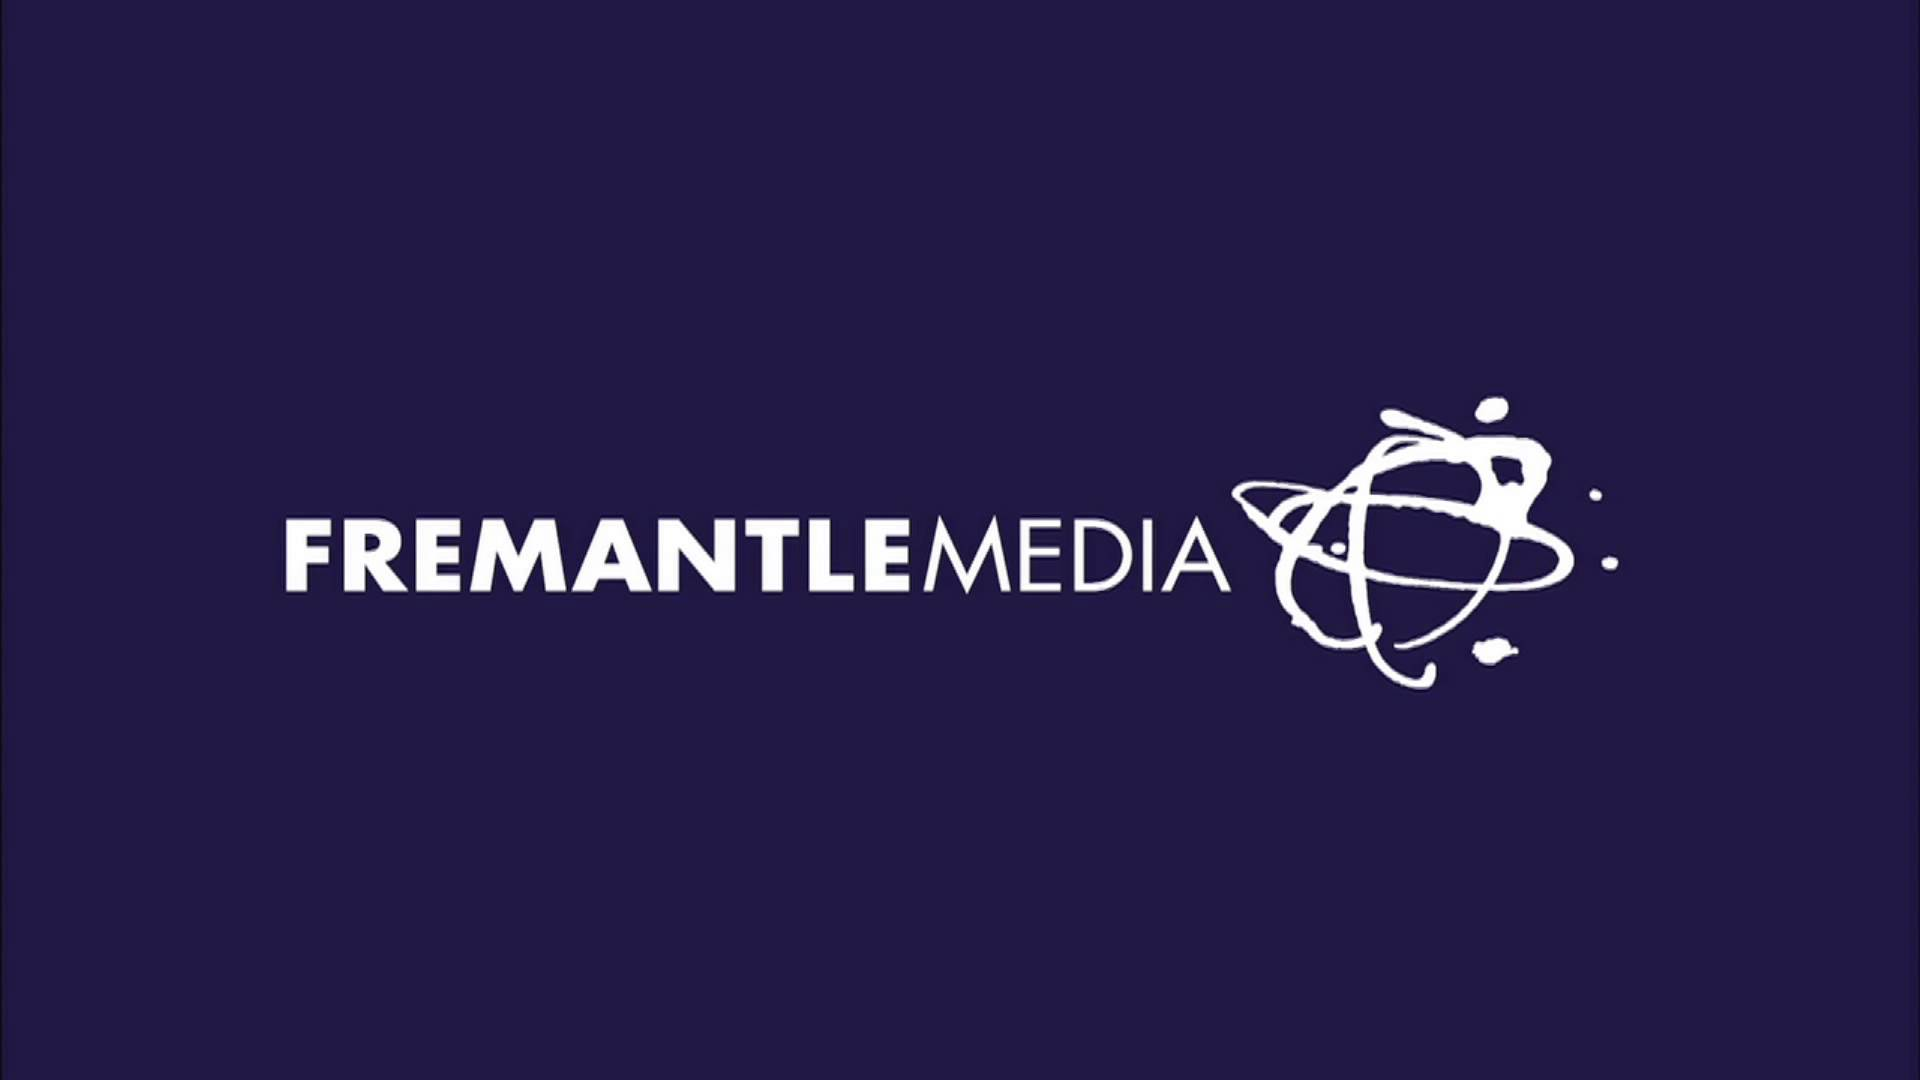 Fremantle Media fixer turkey